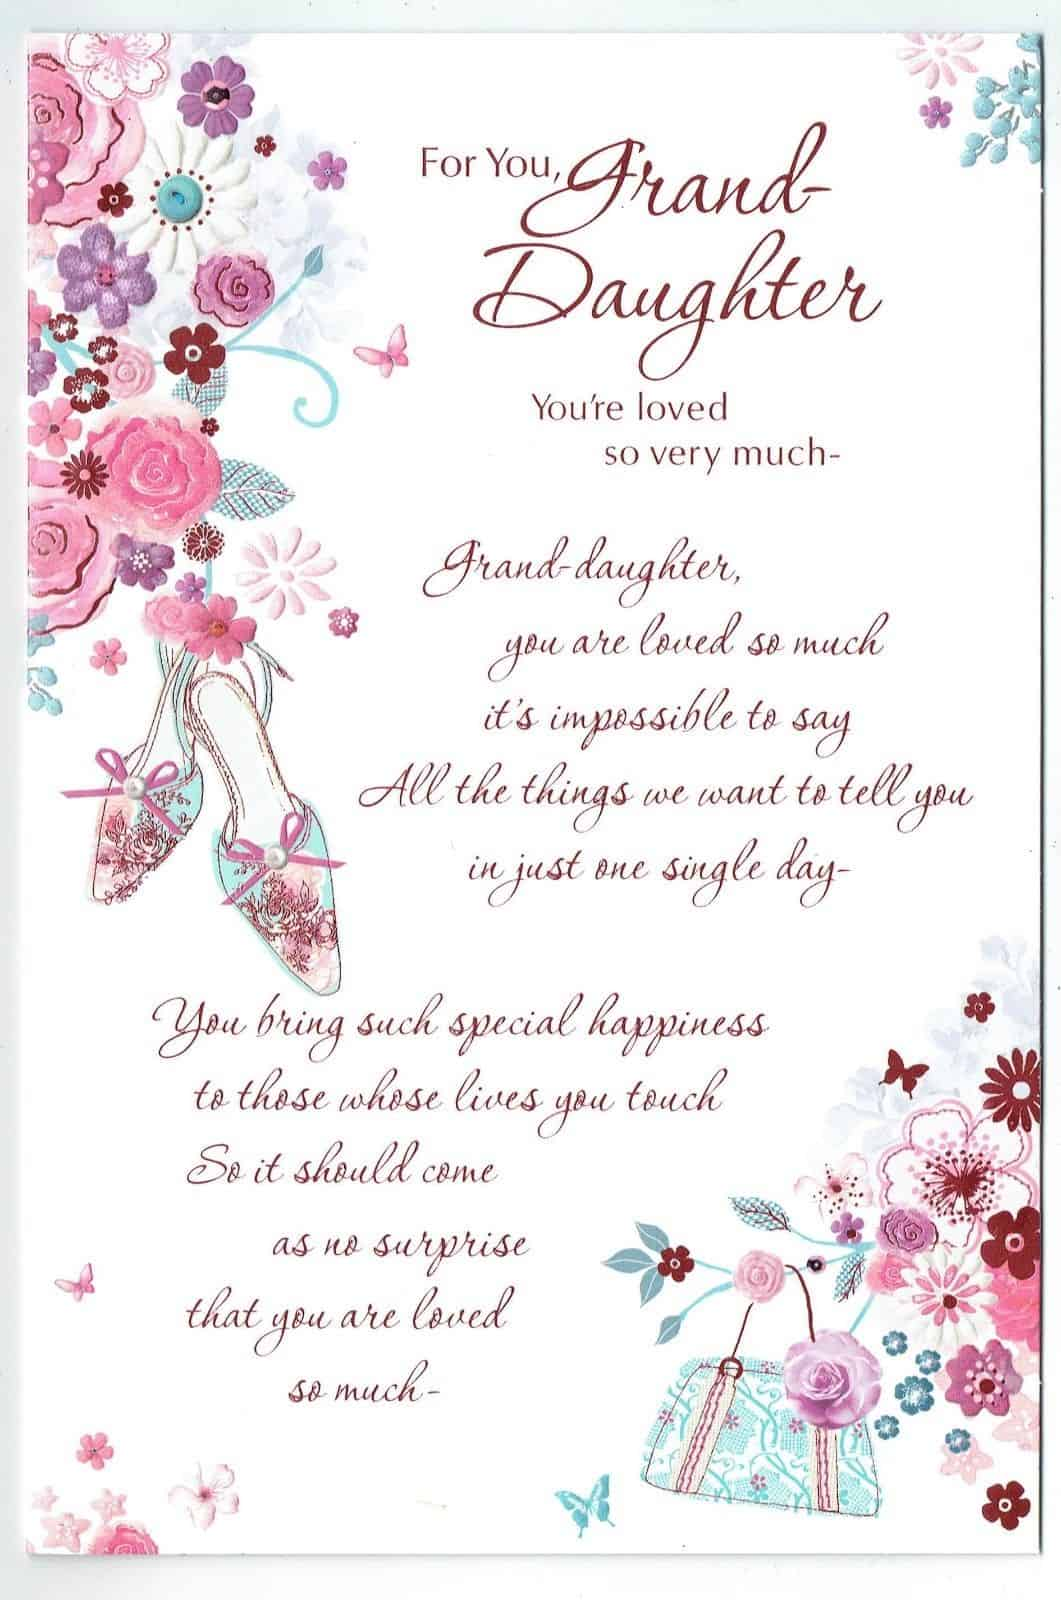 Granddaughter Birthday Card With Lovely Sentiment Verse Shoes Flower Design 283227366291